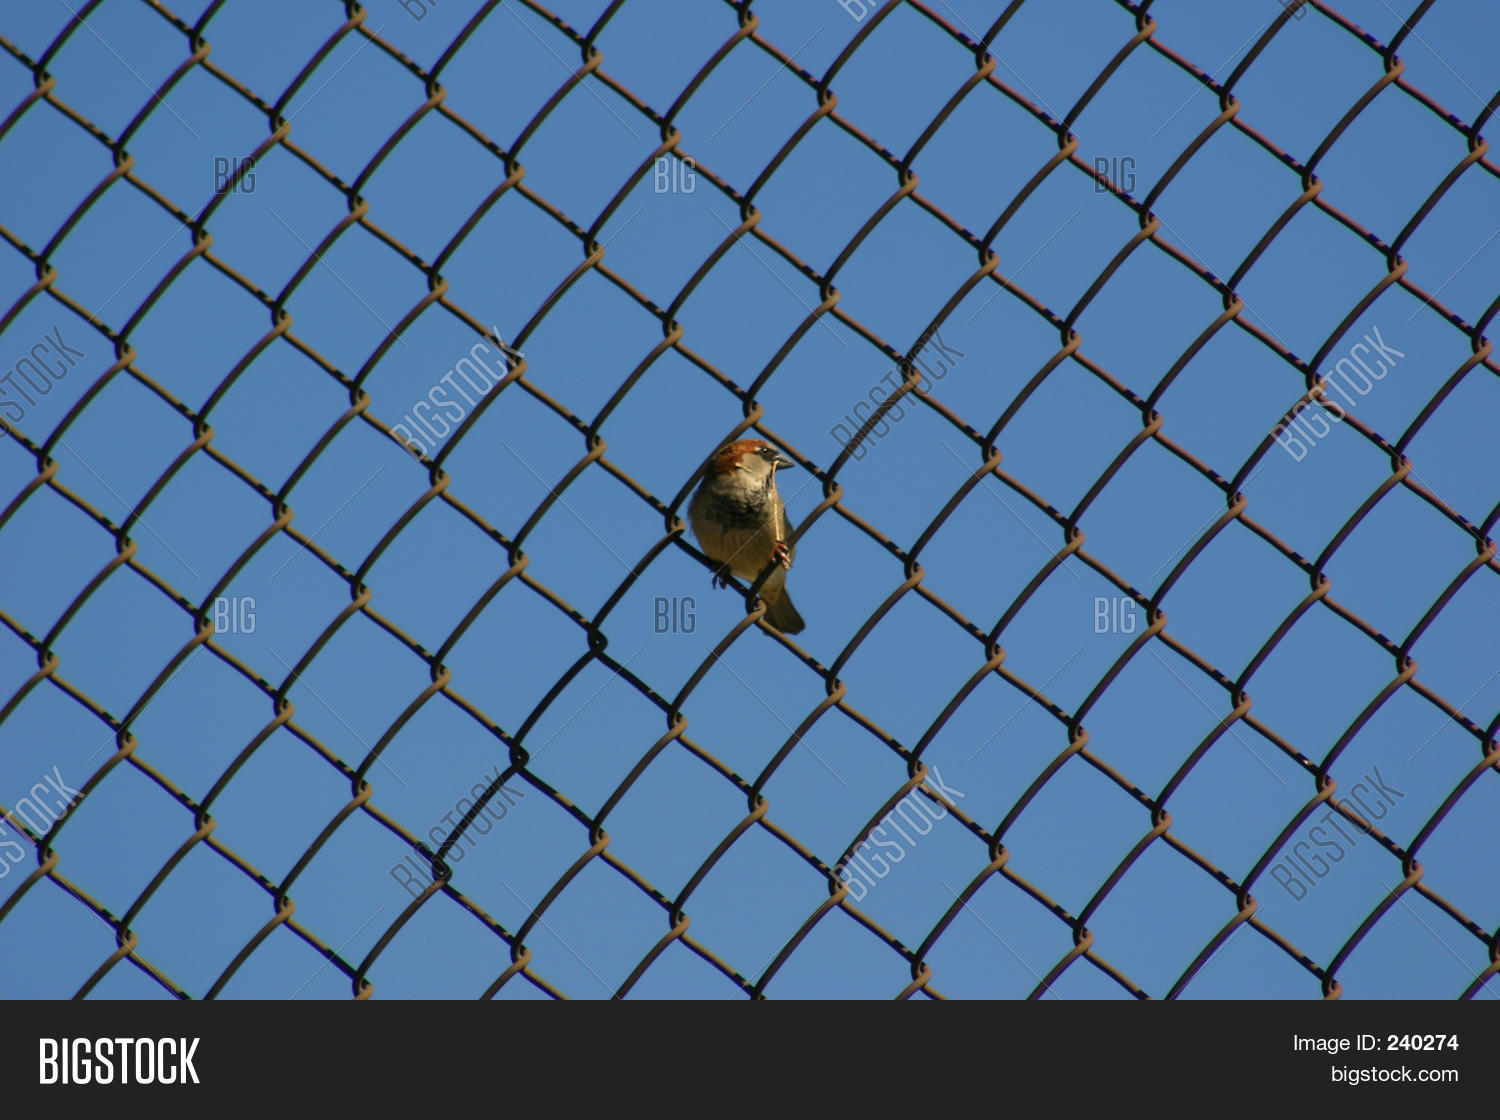 Bird On Wire Image & Photo (Free Trial) | Bigstock